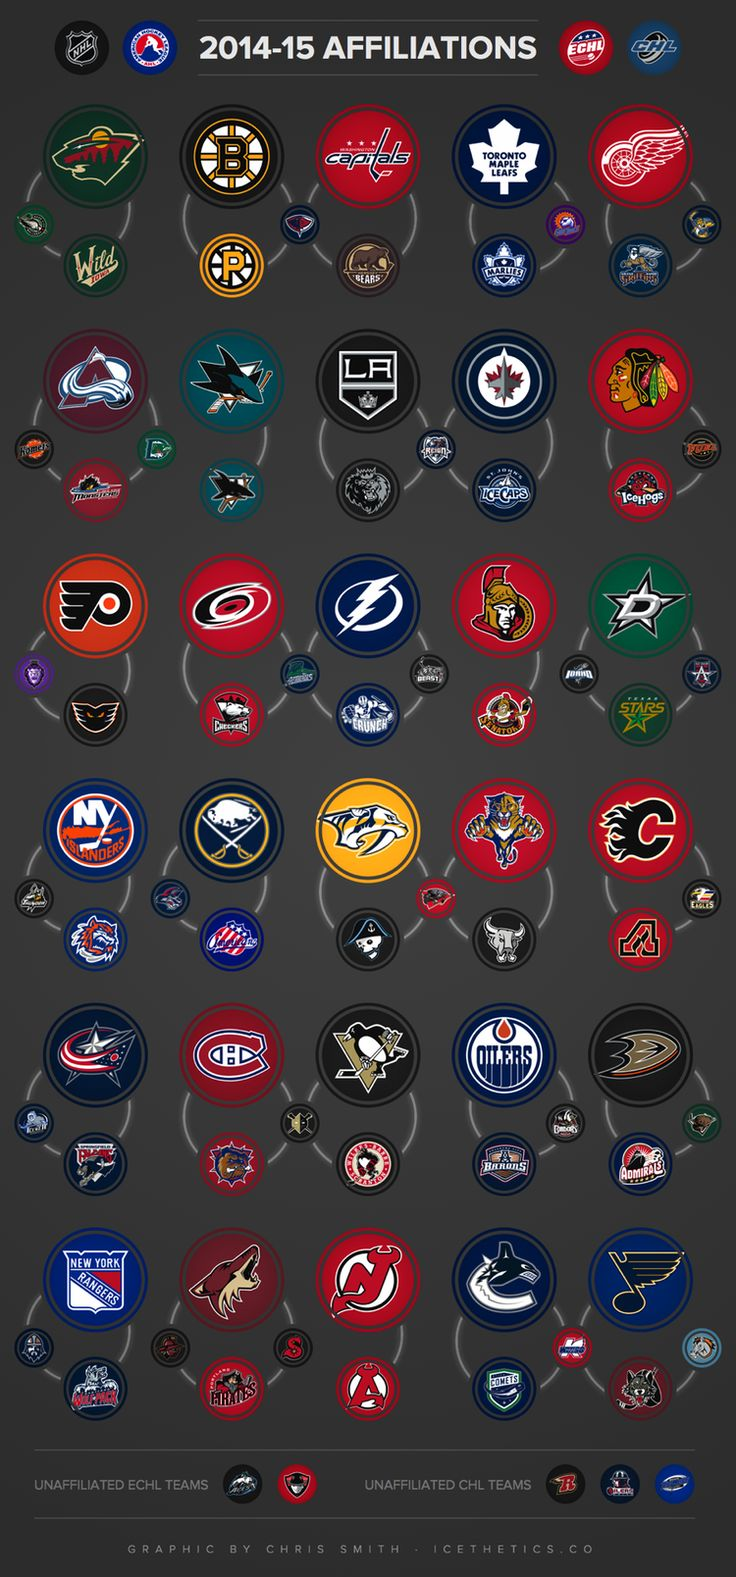 INFOGRAPHIC: 2014-15 NHL AFFILIATIONS .... You can tell which AHL teams have the longest standing affiliations with their NHL clubs (or which exist only to be a feeder for the big club)